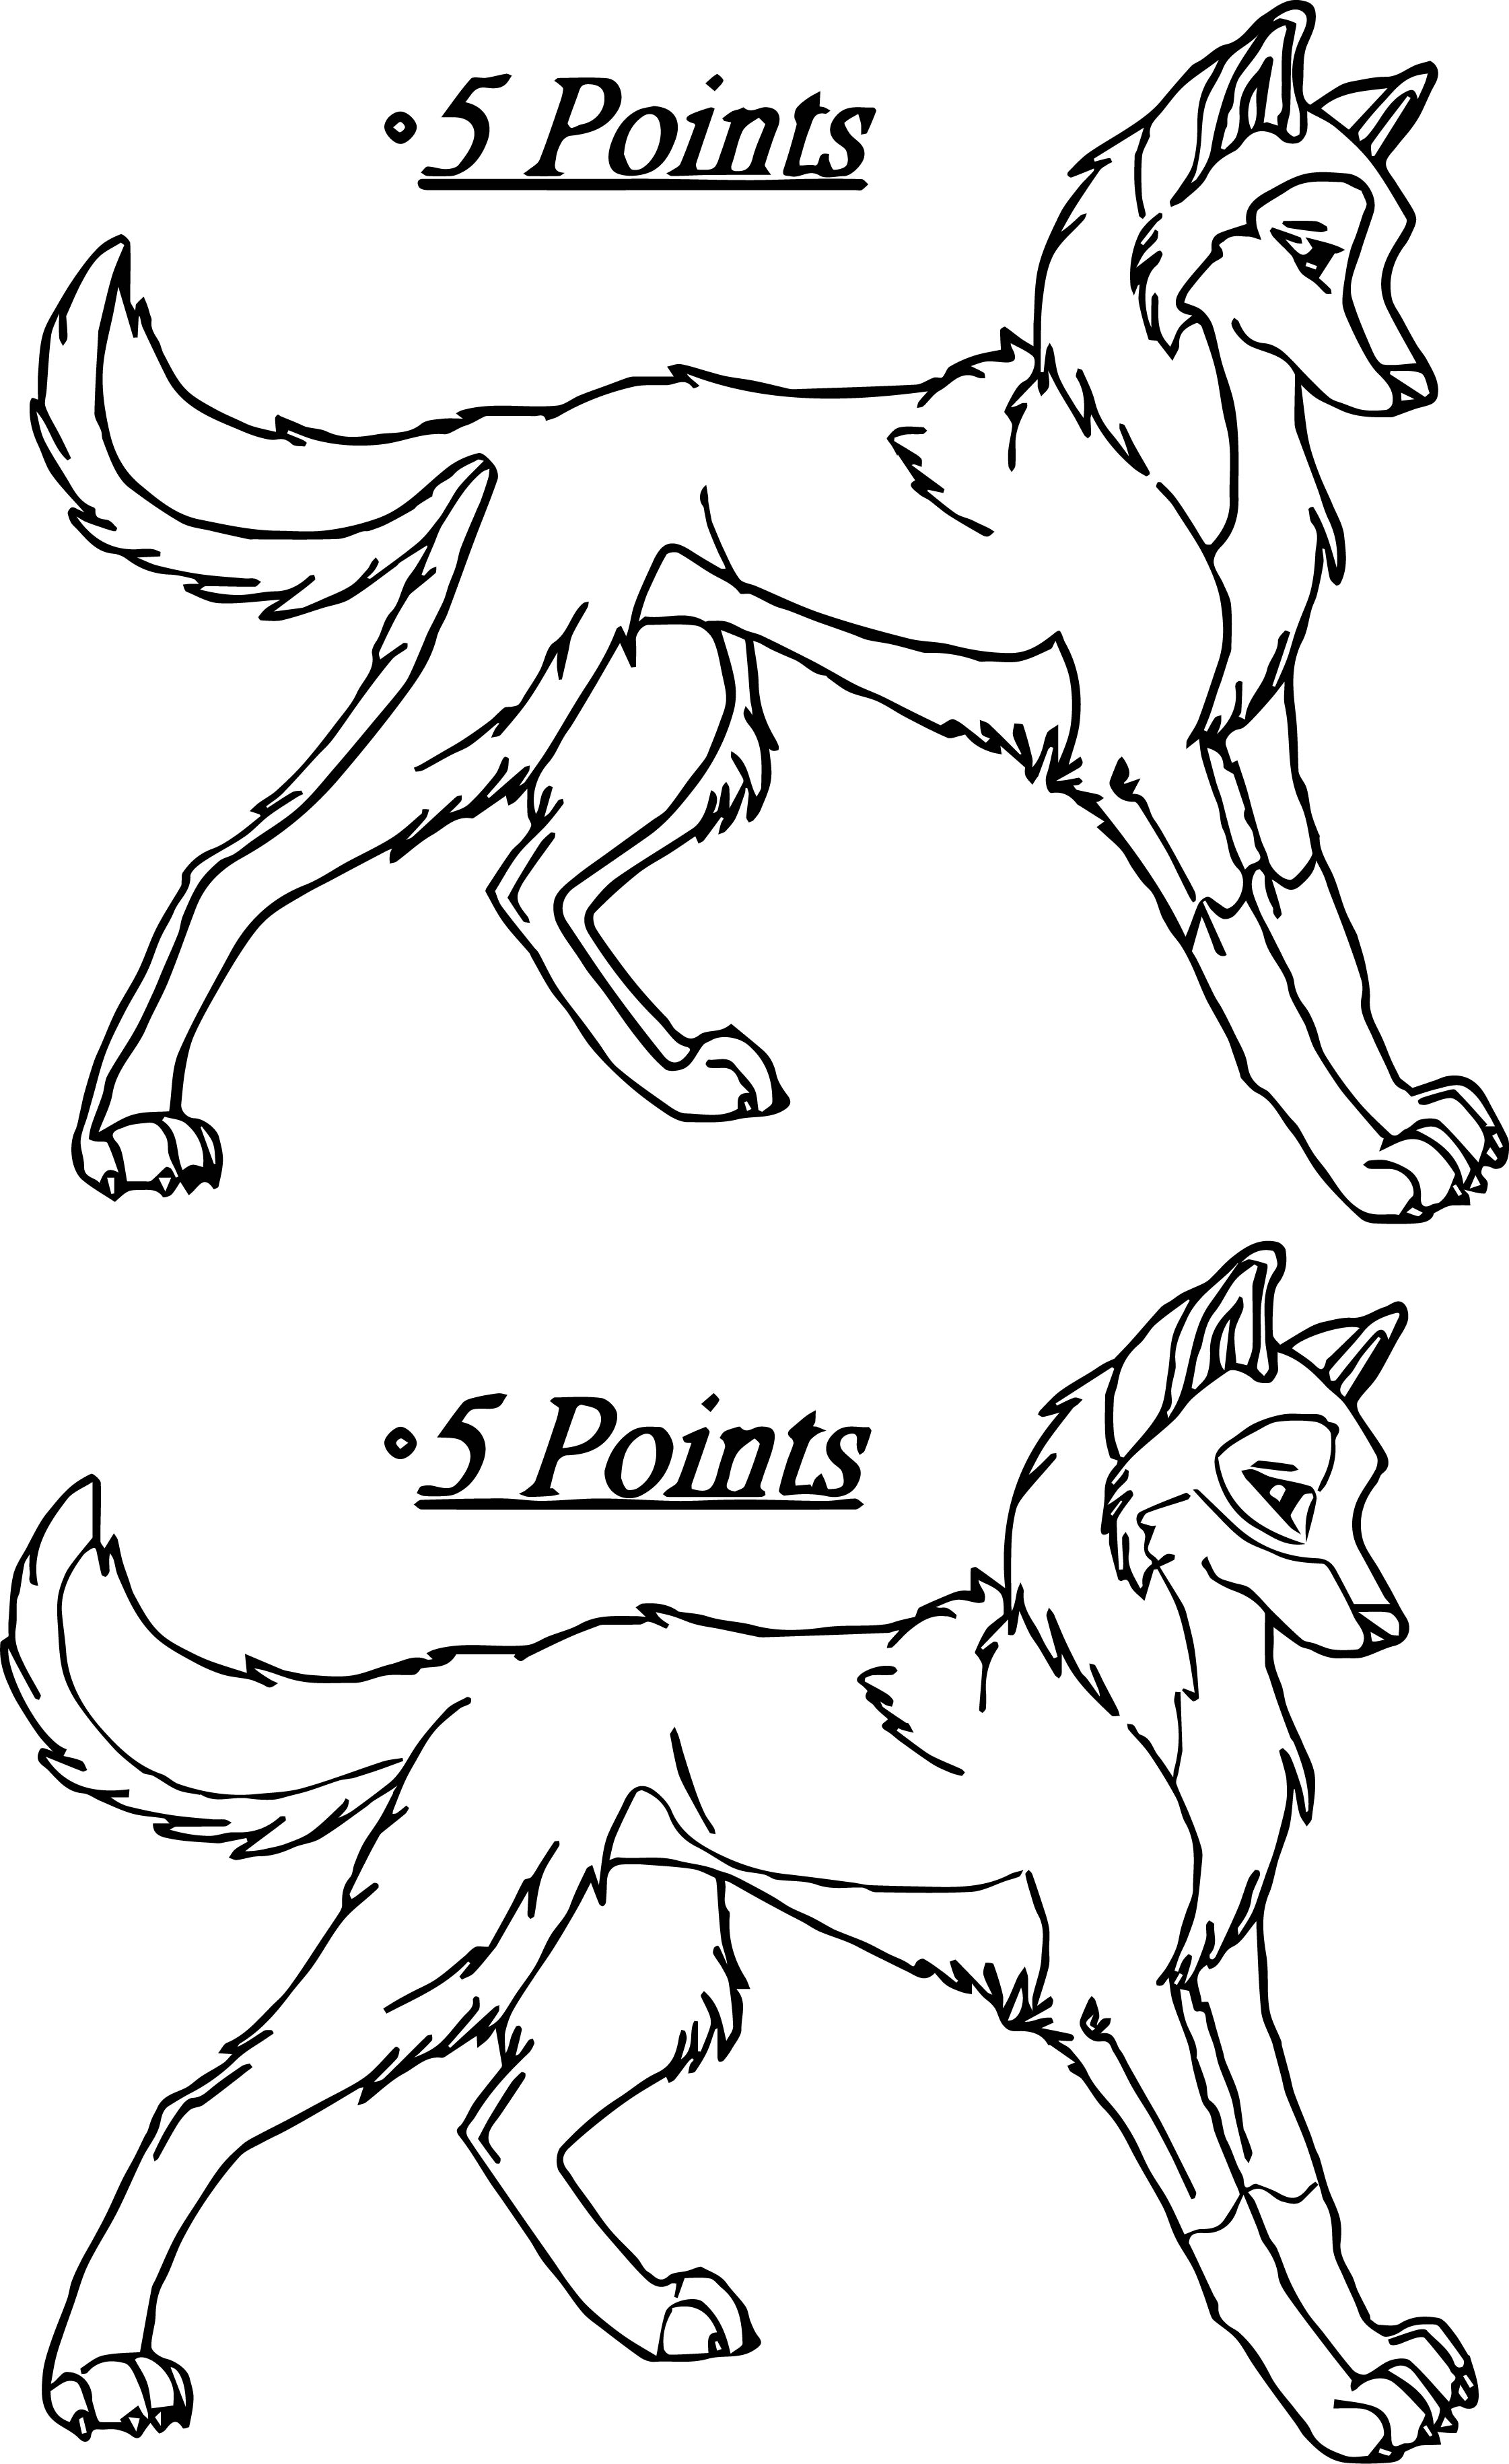 Balto Five Points Draw Coloring Page